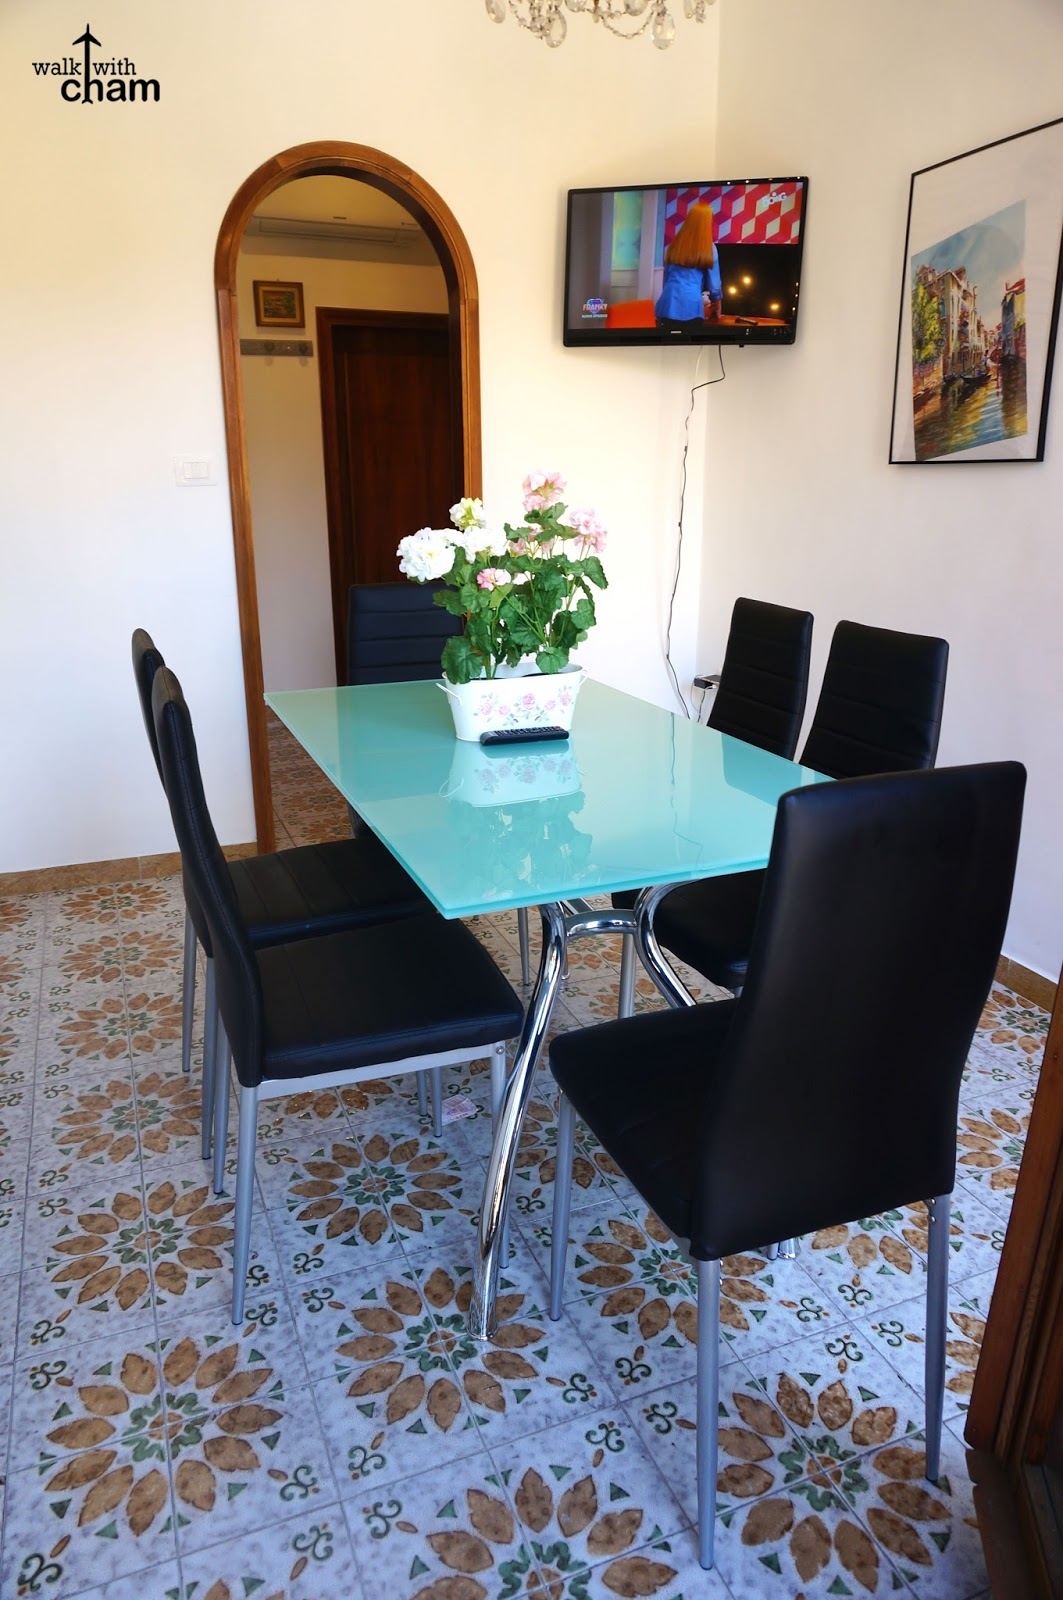 Garden Walk Dining: Walk With Cham: Da Vinci Canal And Garden View Airbnb In